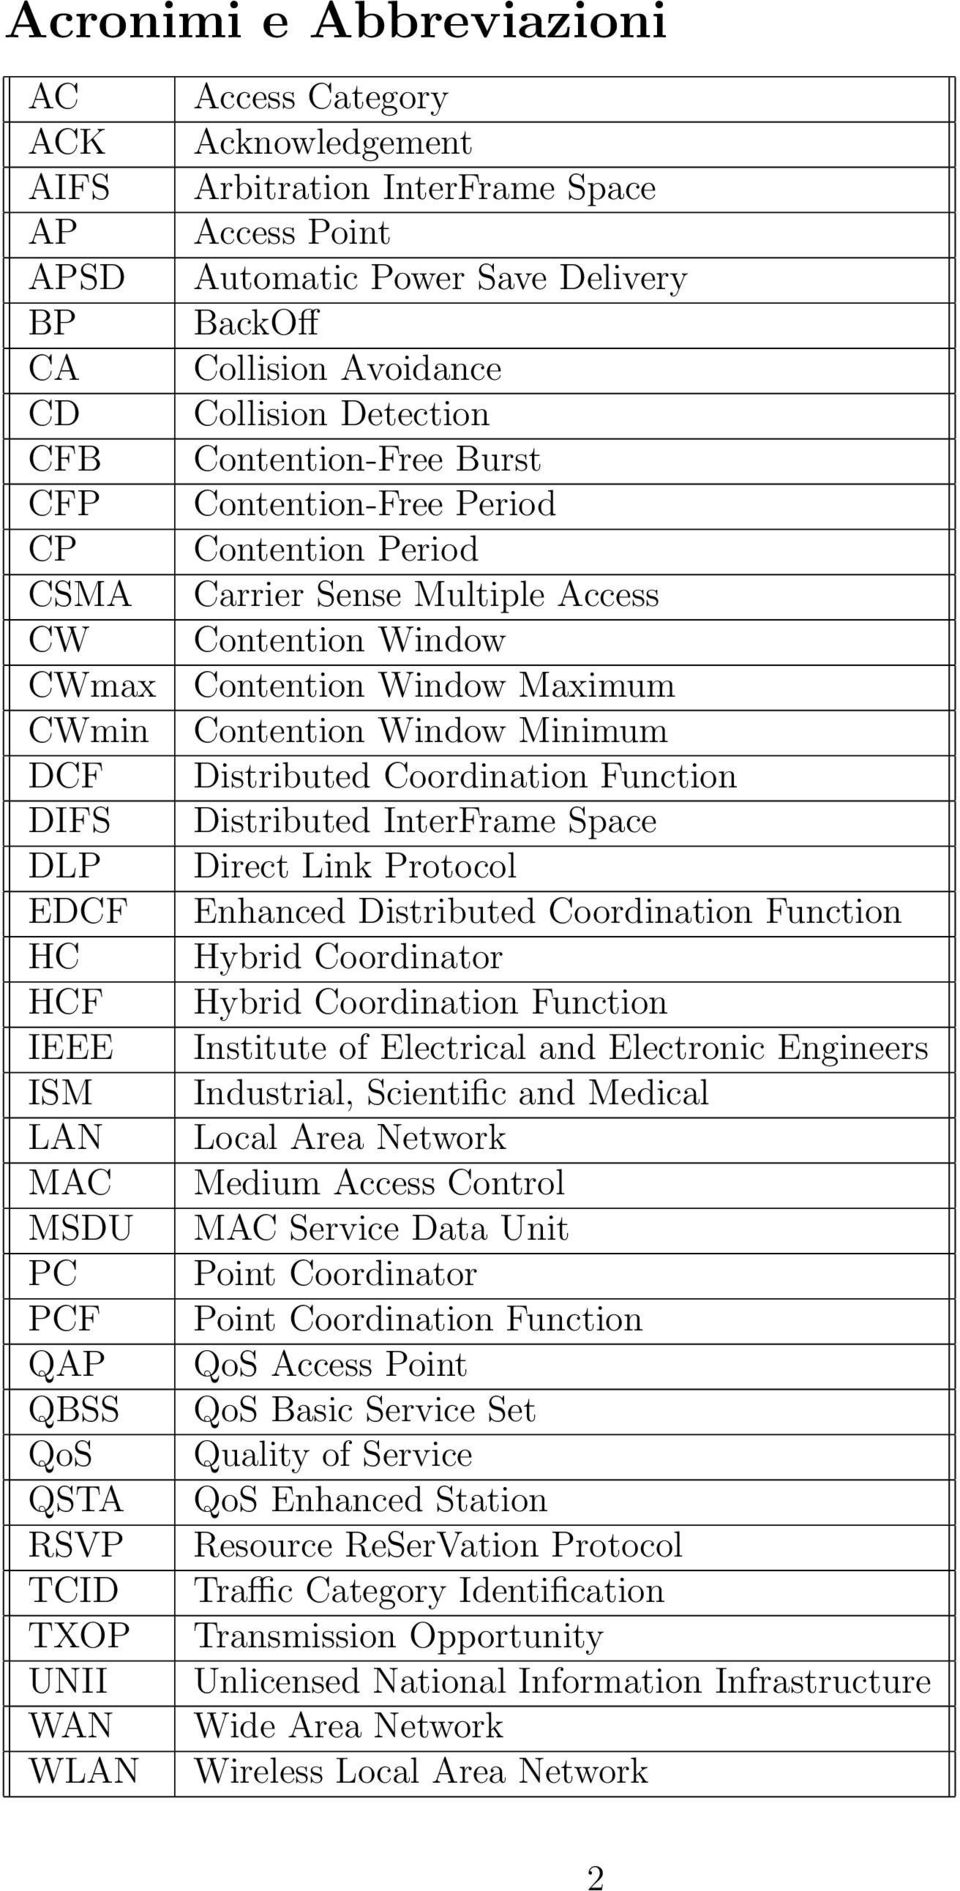 Minimum DCF Distributed Coordination Function DIFS Distributed InterFrame Space DLP Direct Link Protocol EDCF Enhanced Distributed Coordination Function HC Hybrid Coordinator HCF Hybrid Coordination